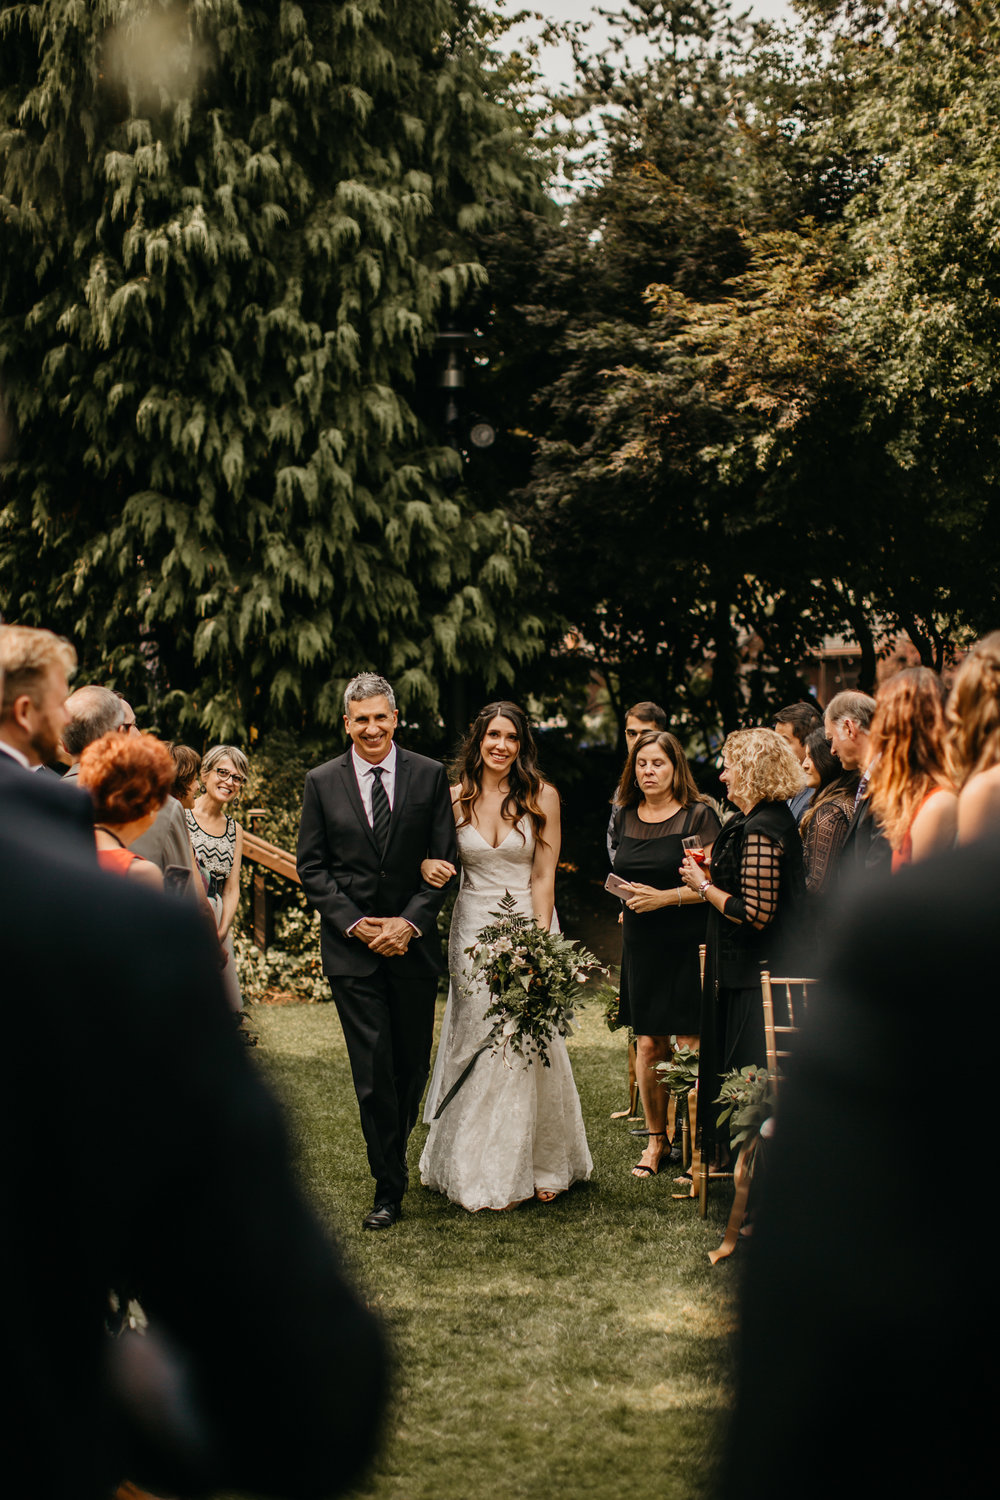 Max&SamPhoto_Seattle Wedding Photographer_Bellevue Robinswood House_074.jpg